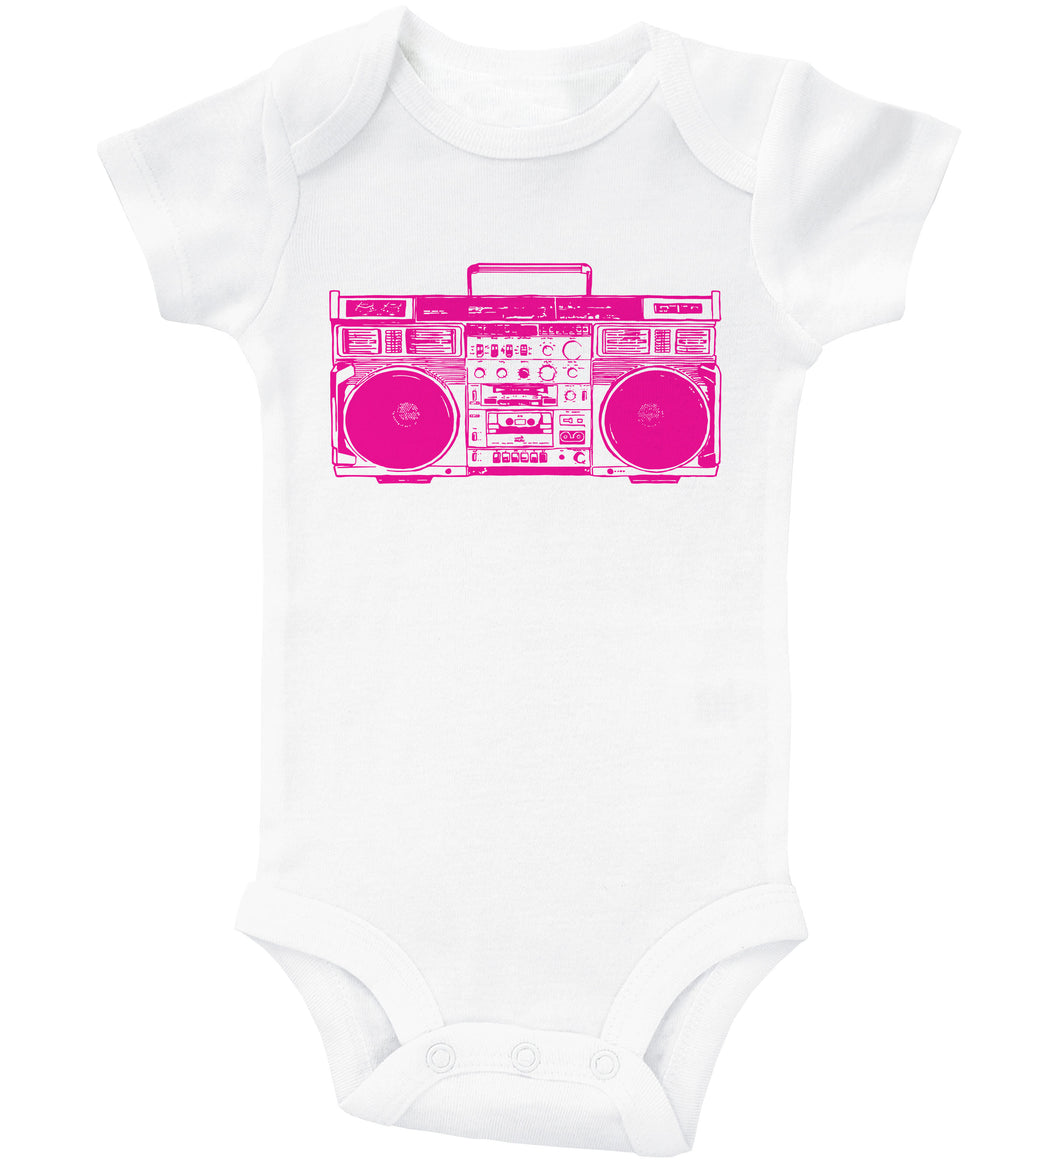 PINK BOOMBOX / 90'S Inspired Baby Onesie